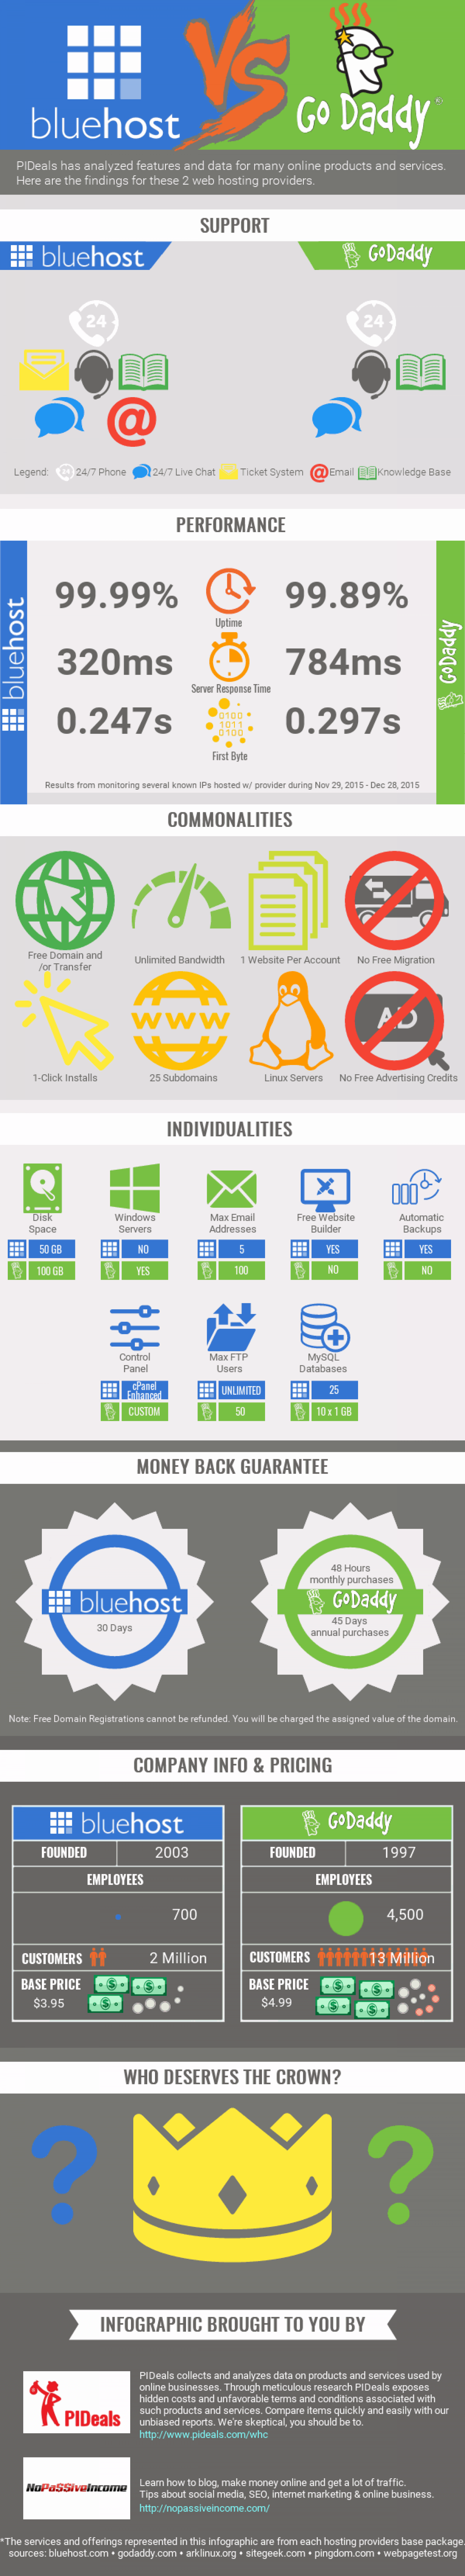 Bluehost VS GoDaddy: Which One Gives the Best Service? Infographic